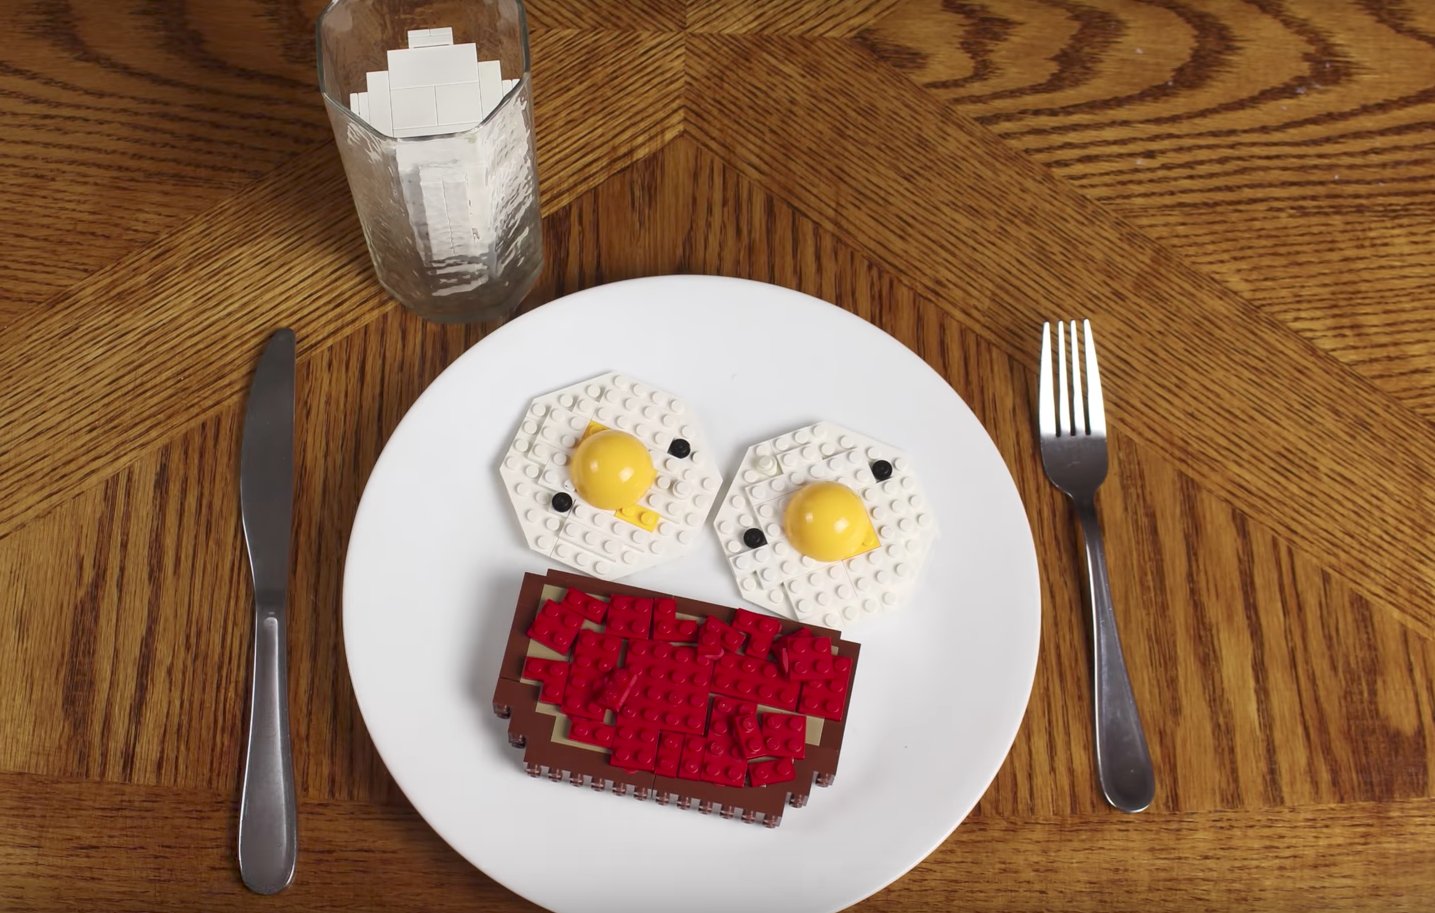 EC: This Breakfast Is Made Entirely of Legos